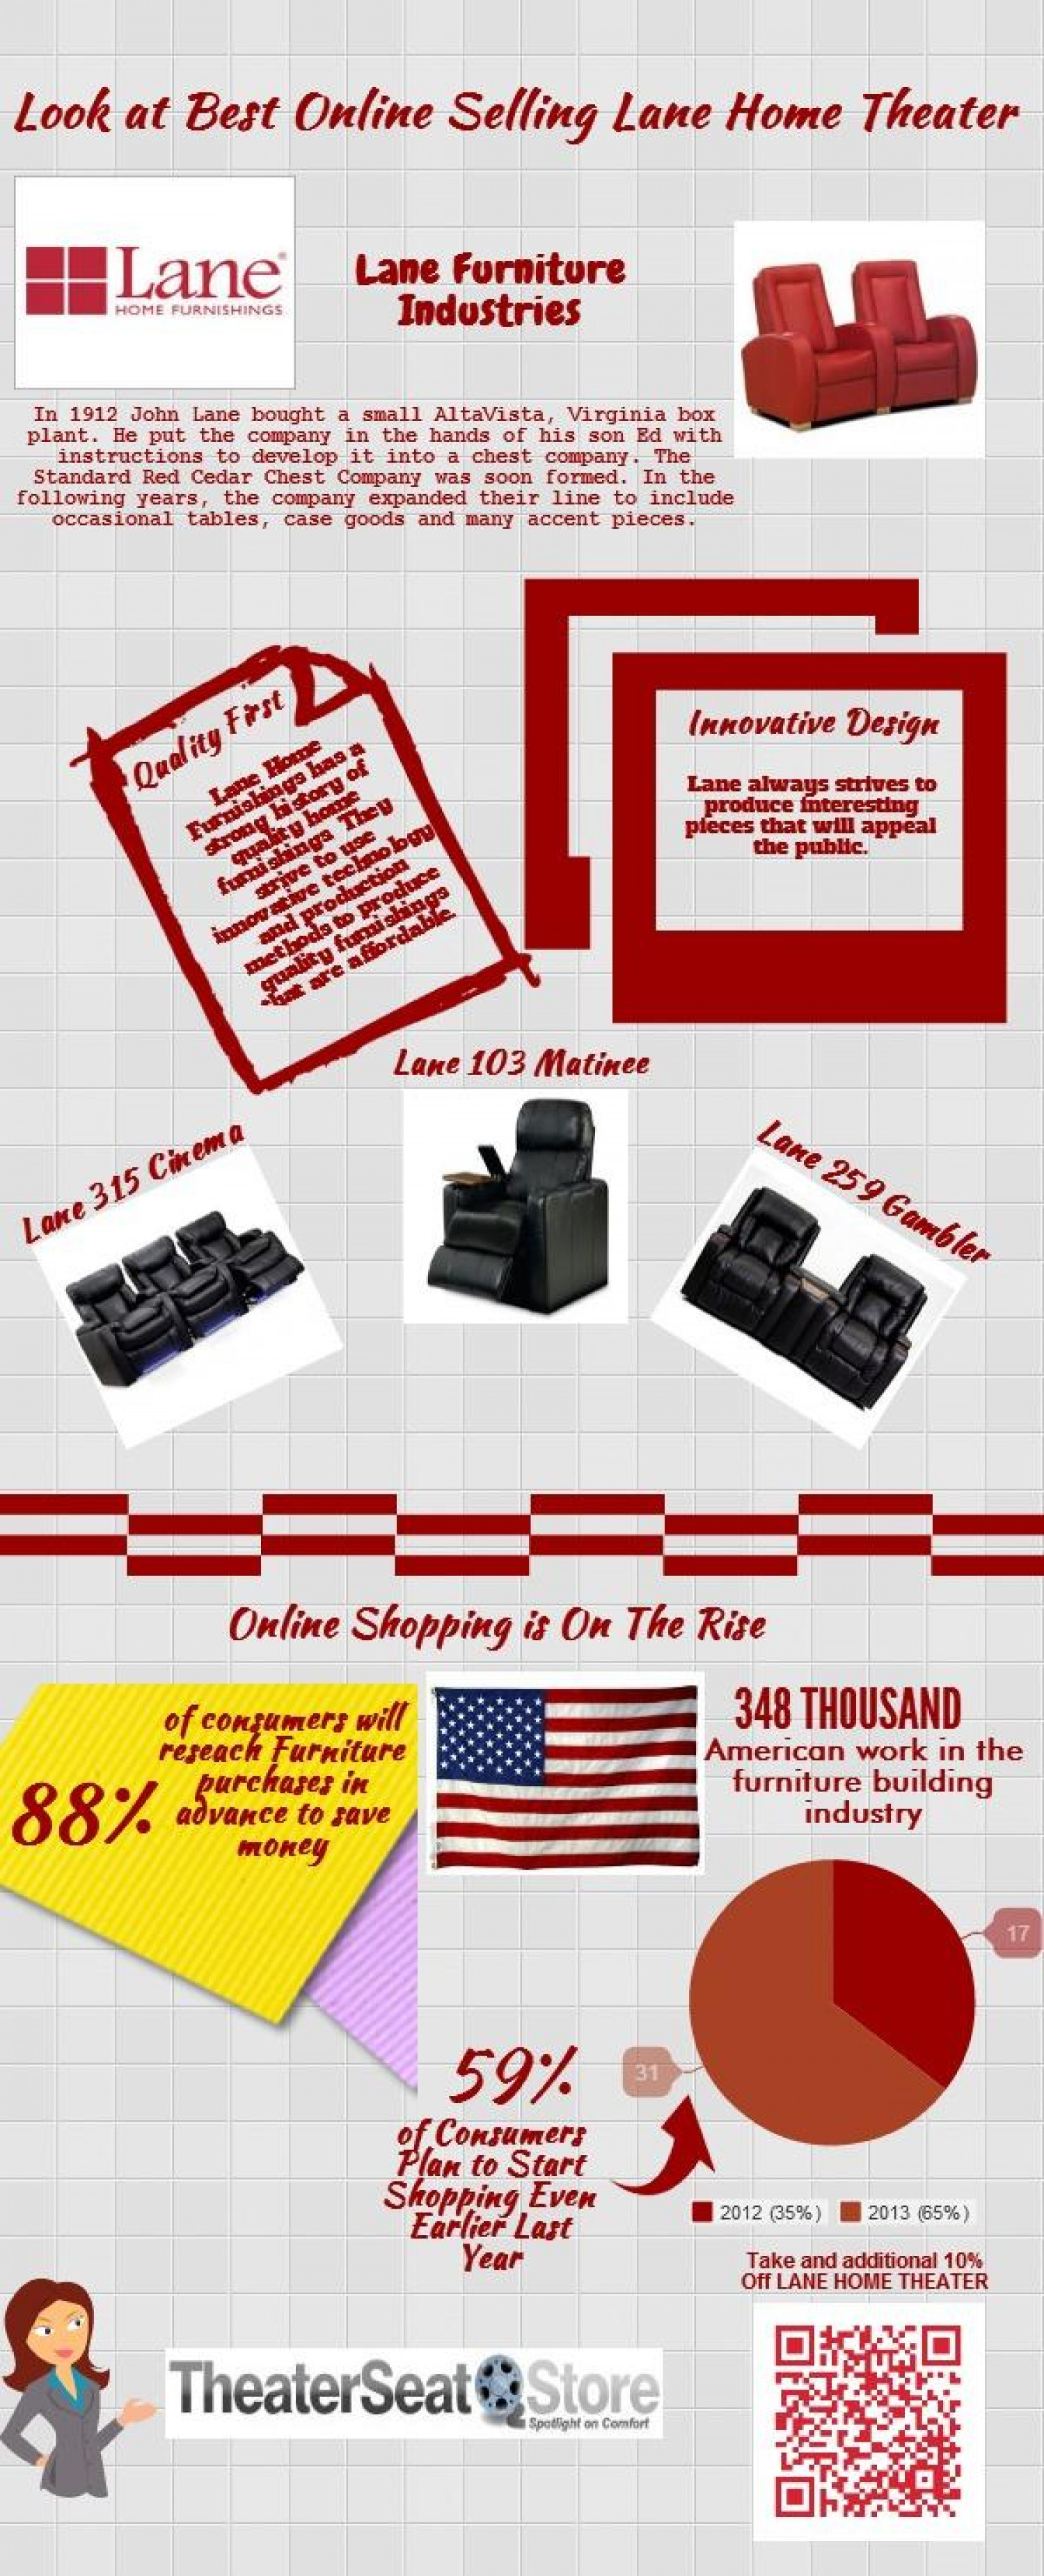 Look at Best Online Selling Lane Home Theater - [Infographic ] Infographic